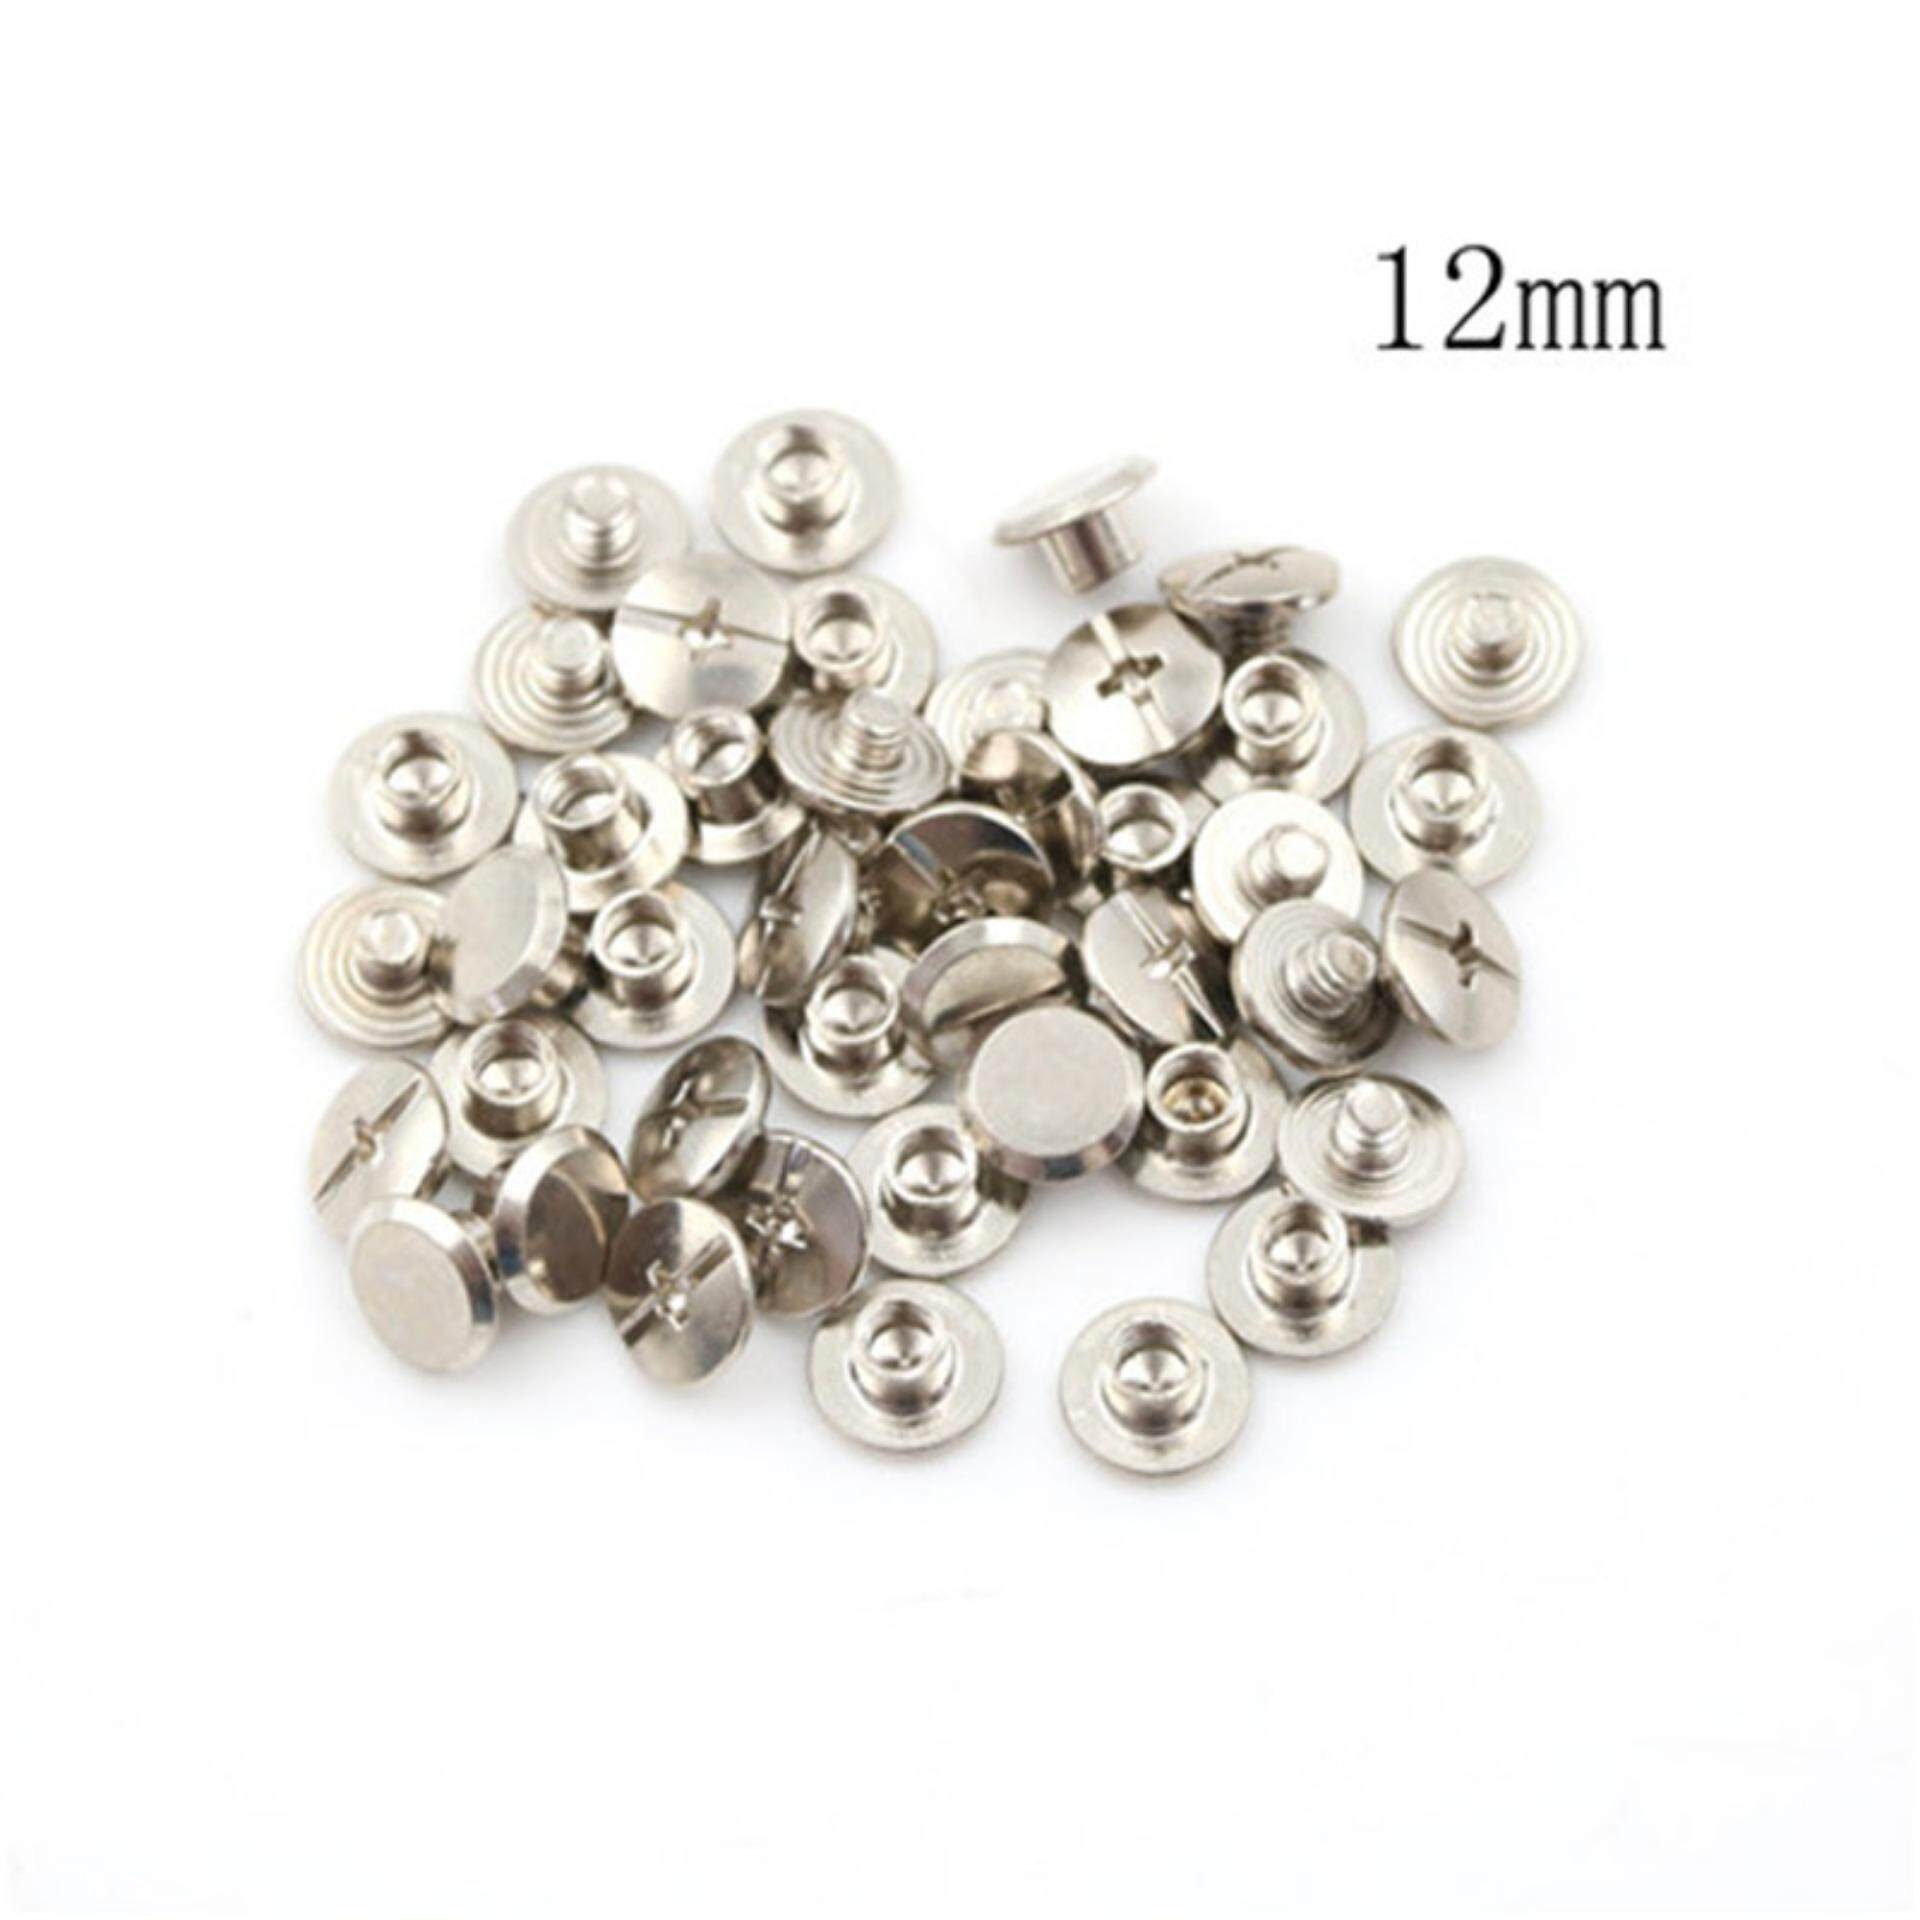 Mecola 20PCS Nickel Binding Chicago Screws Nail Rivets Album Craft 5x6mm Useful  12mm